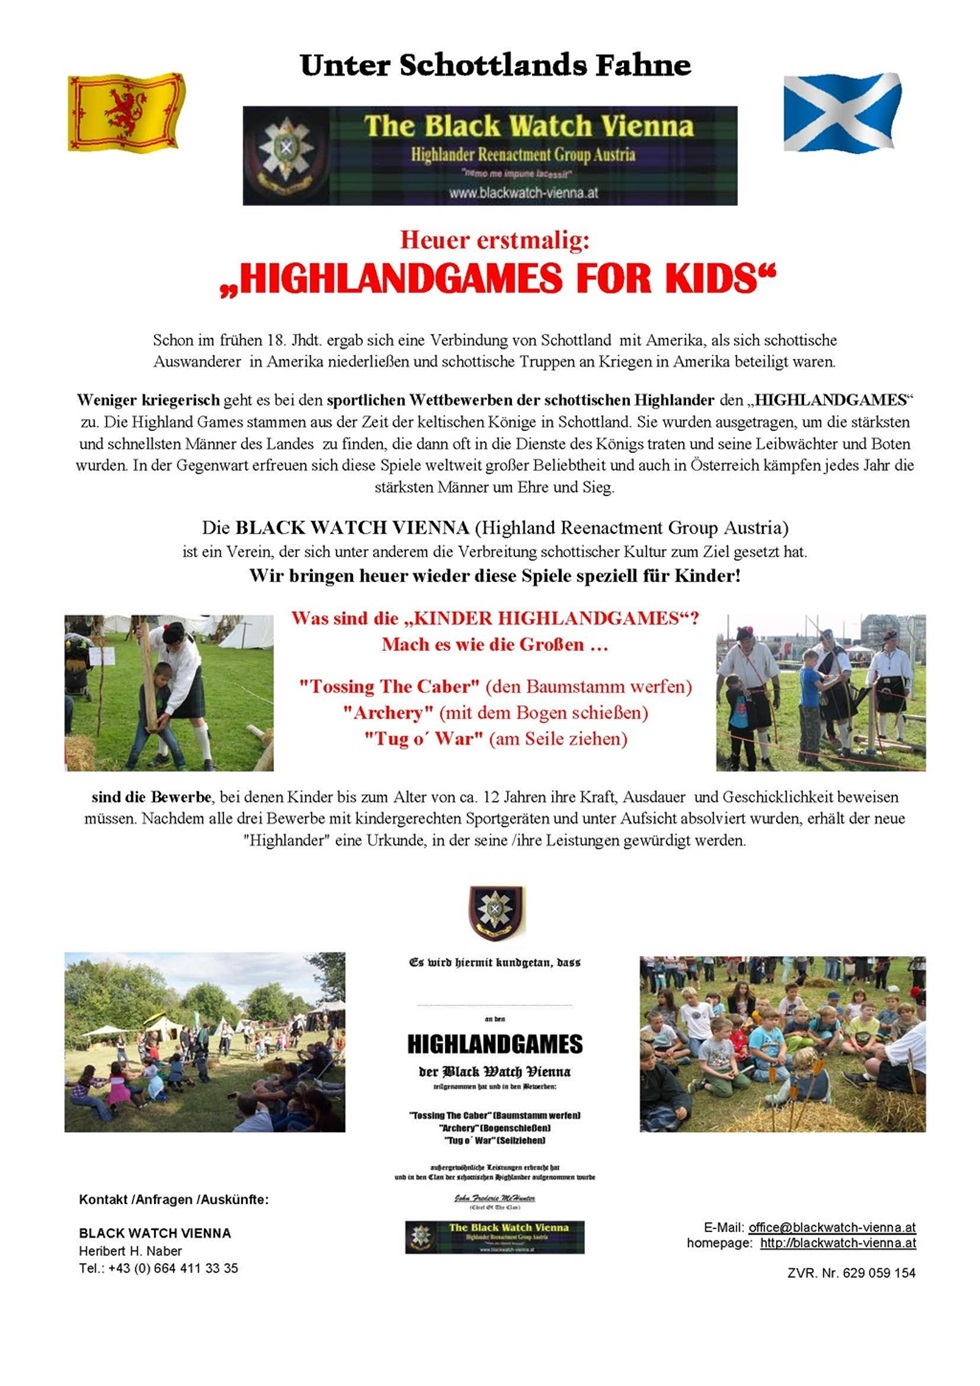 unter Schottlands Fahne - Highlandgames for kids